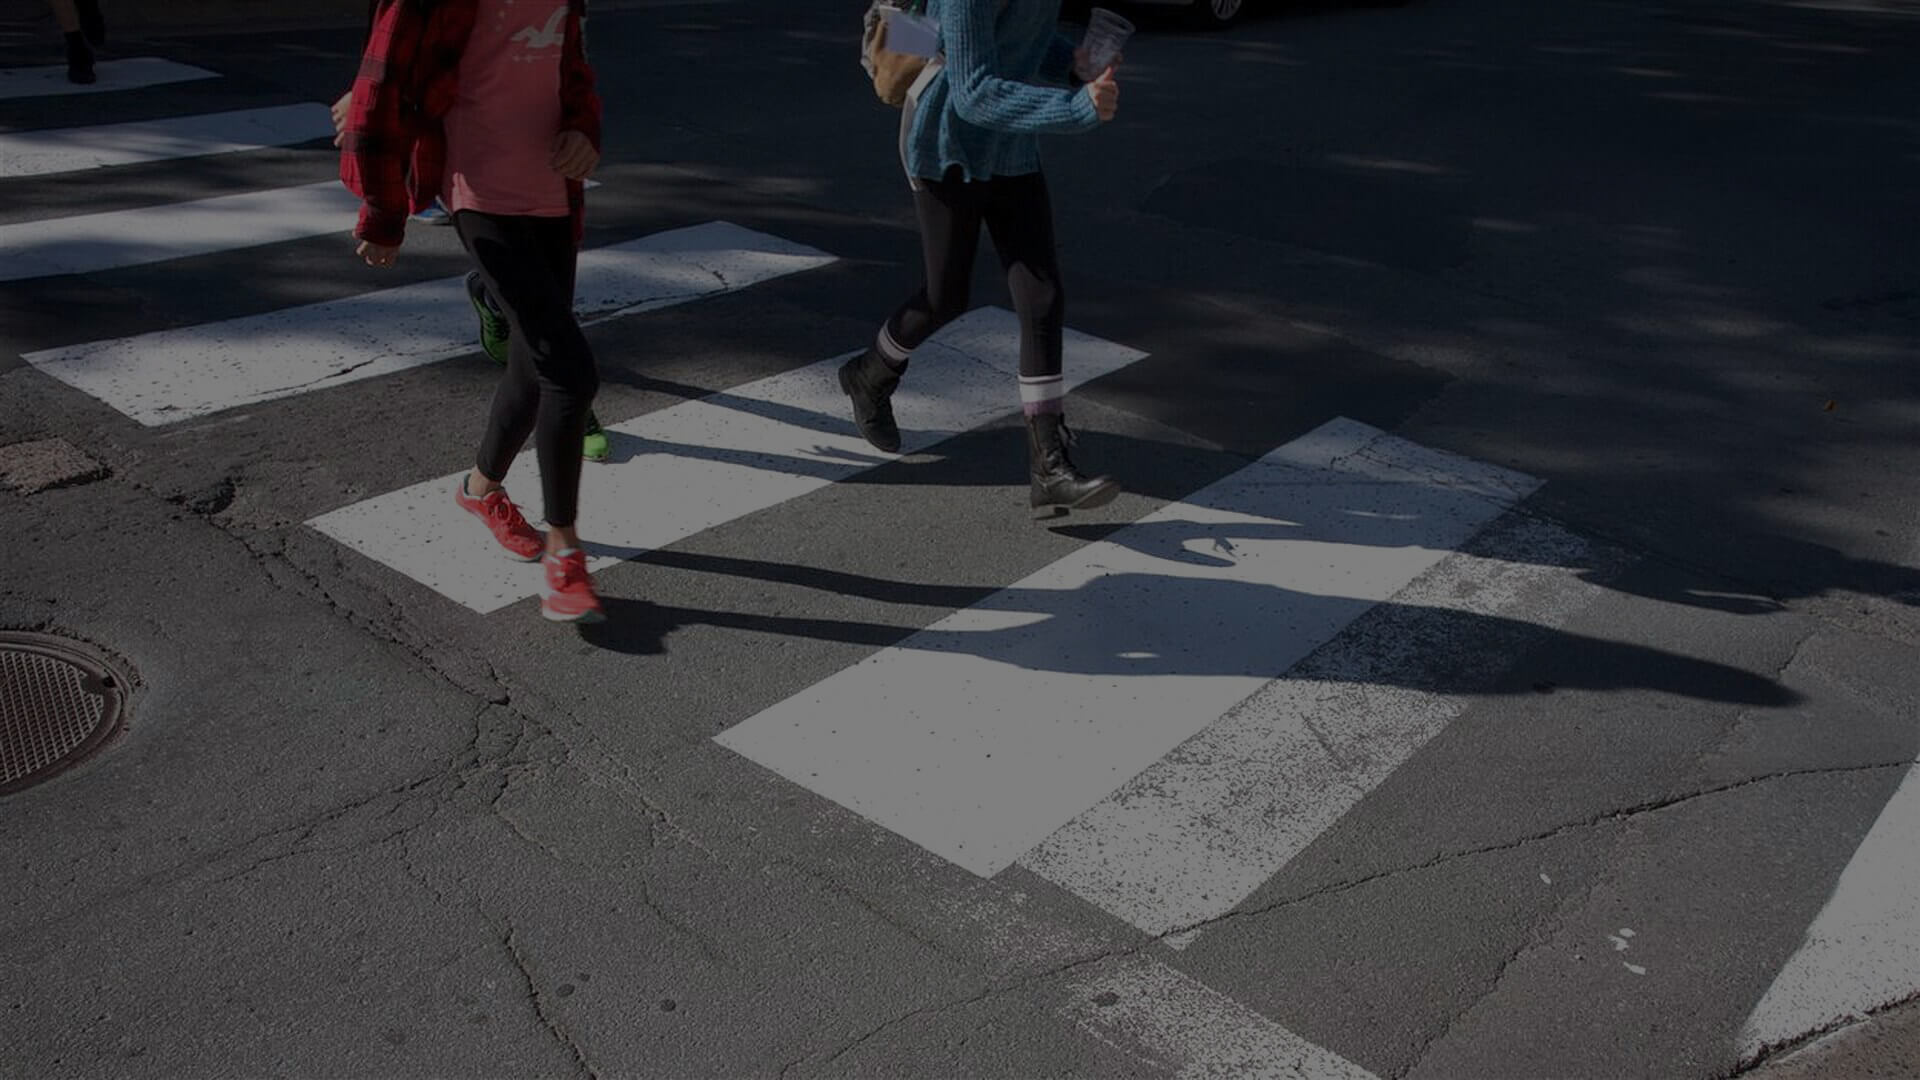 How Can Halifax Help Pedestrians Be Safer?